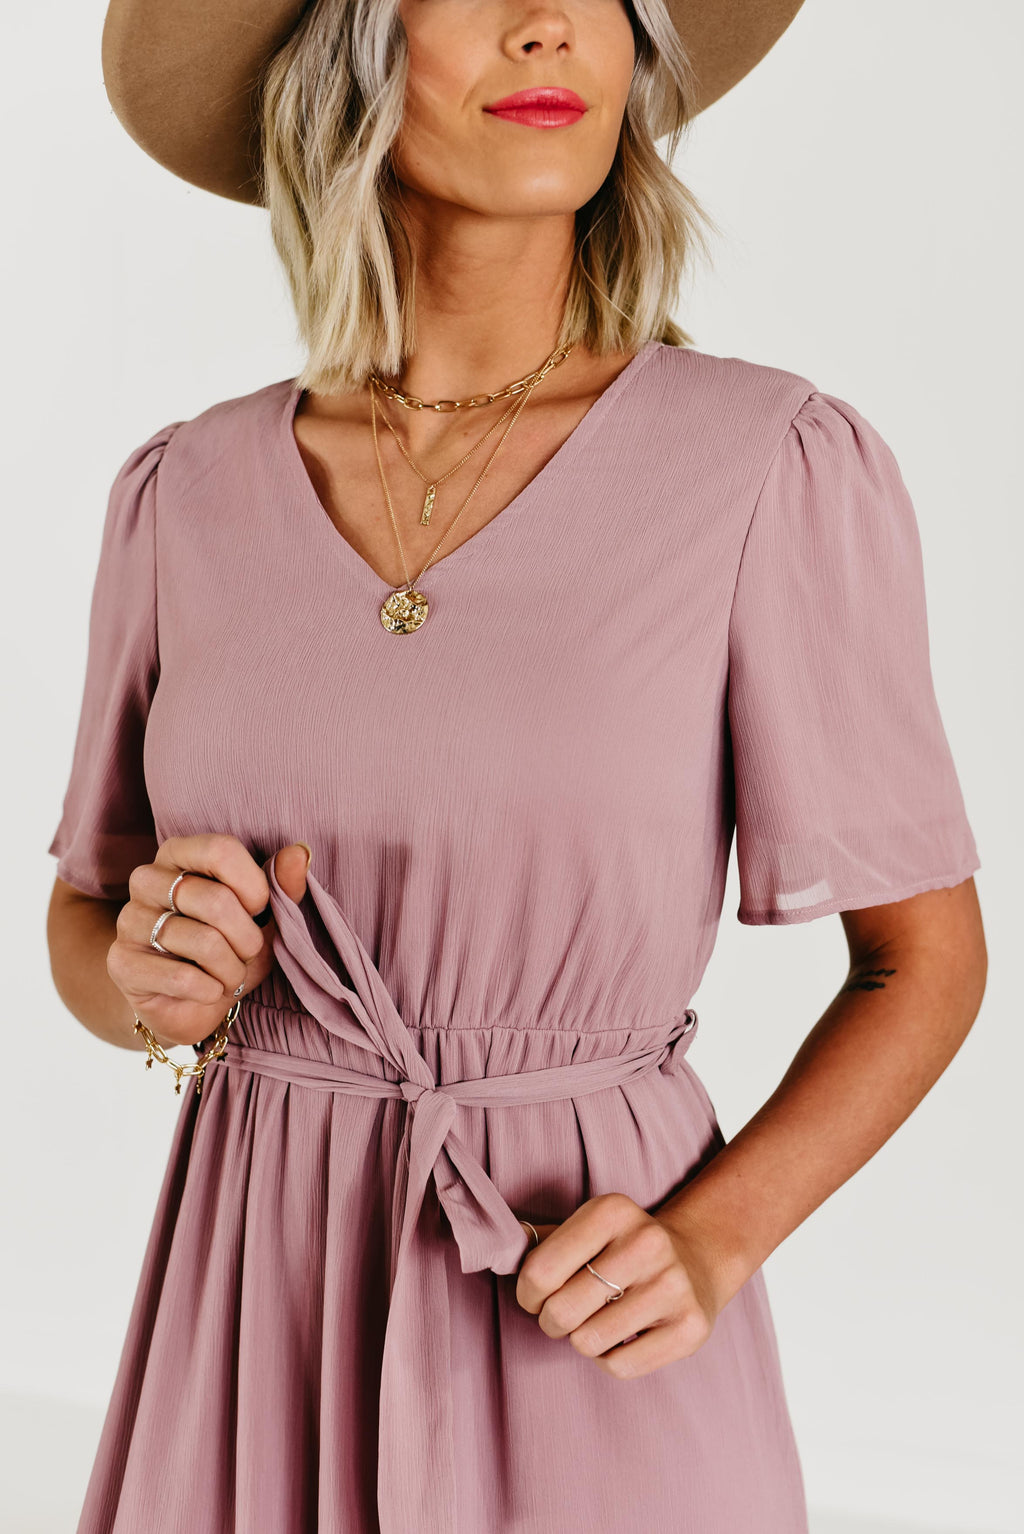 The Julia Dress - Mauve